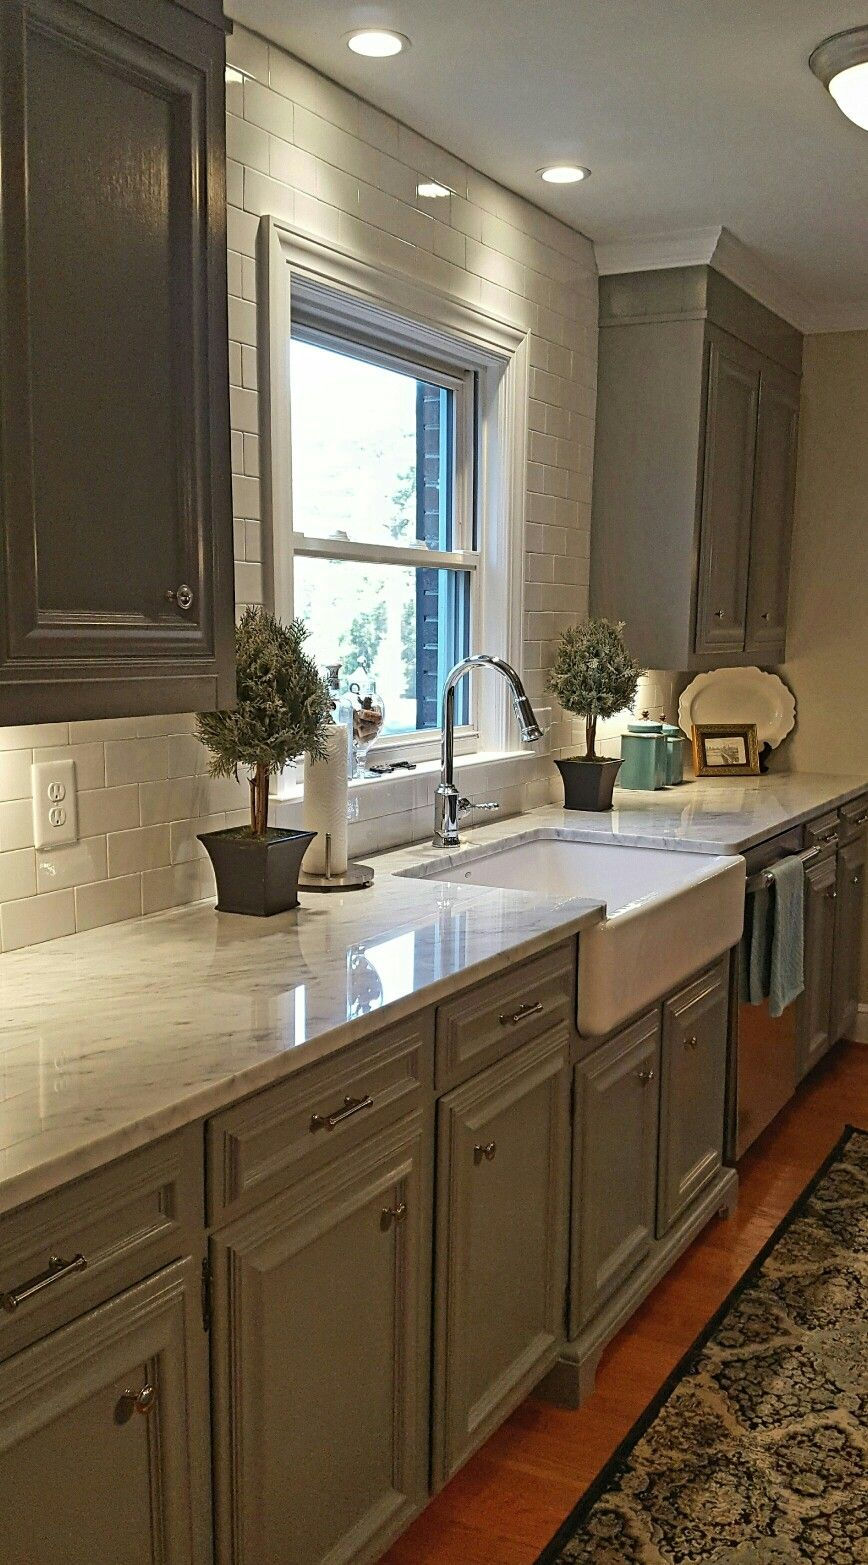 Kitchen Update Added Trim To Existing Cabinets And Repainted Chelsea Gray By B Trendy Farmhouse Kitchen Tile Countertops Kitchen Farmhouse Kitchen Countertops